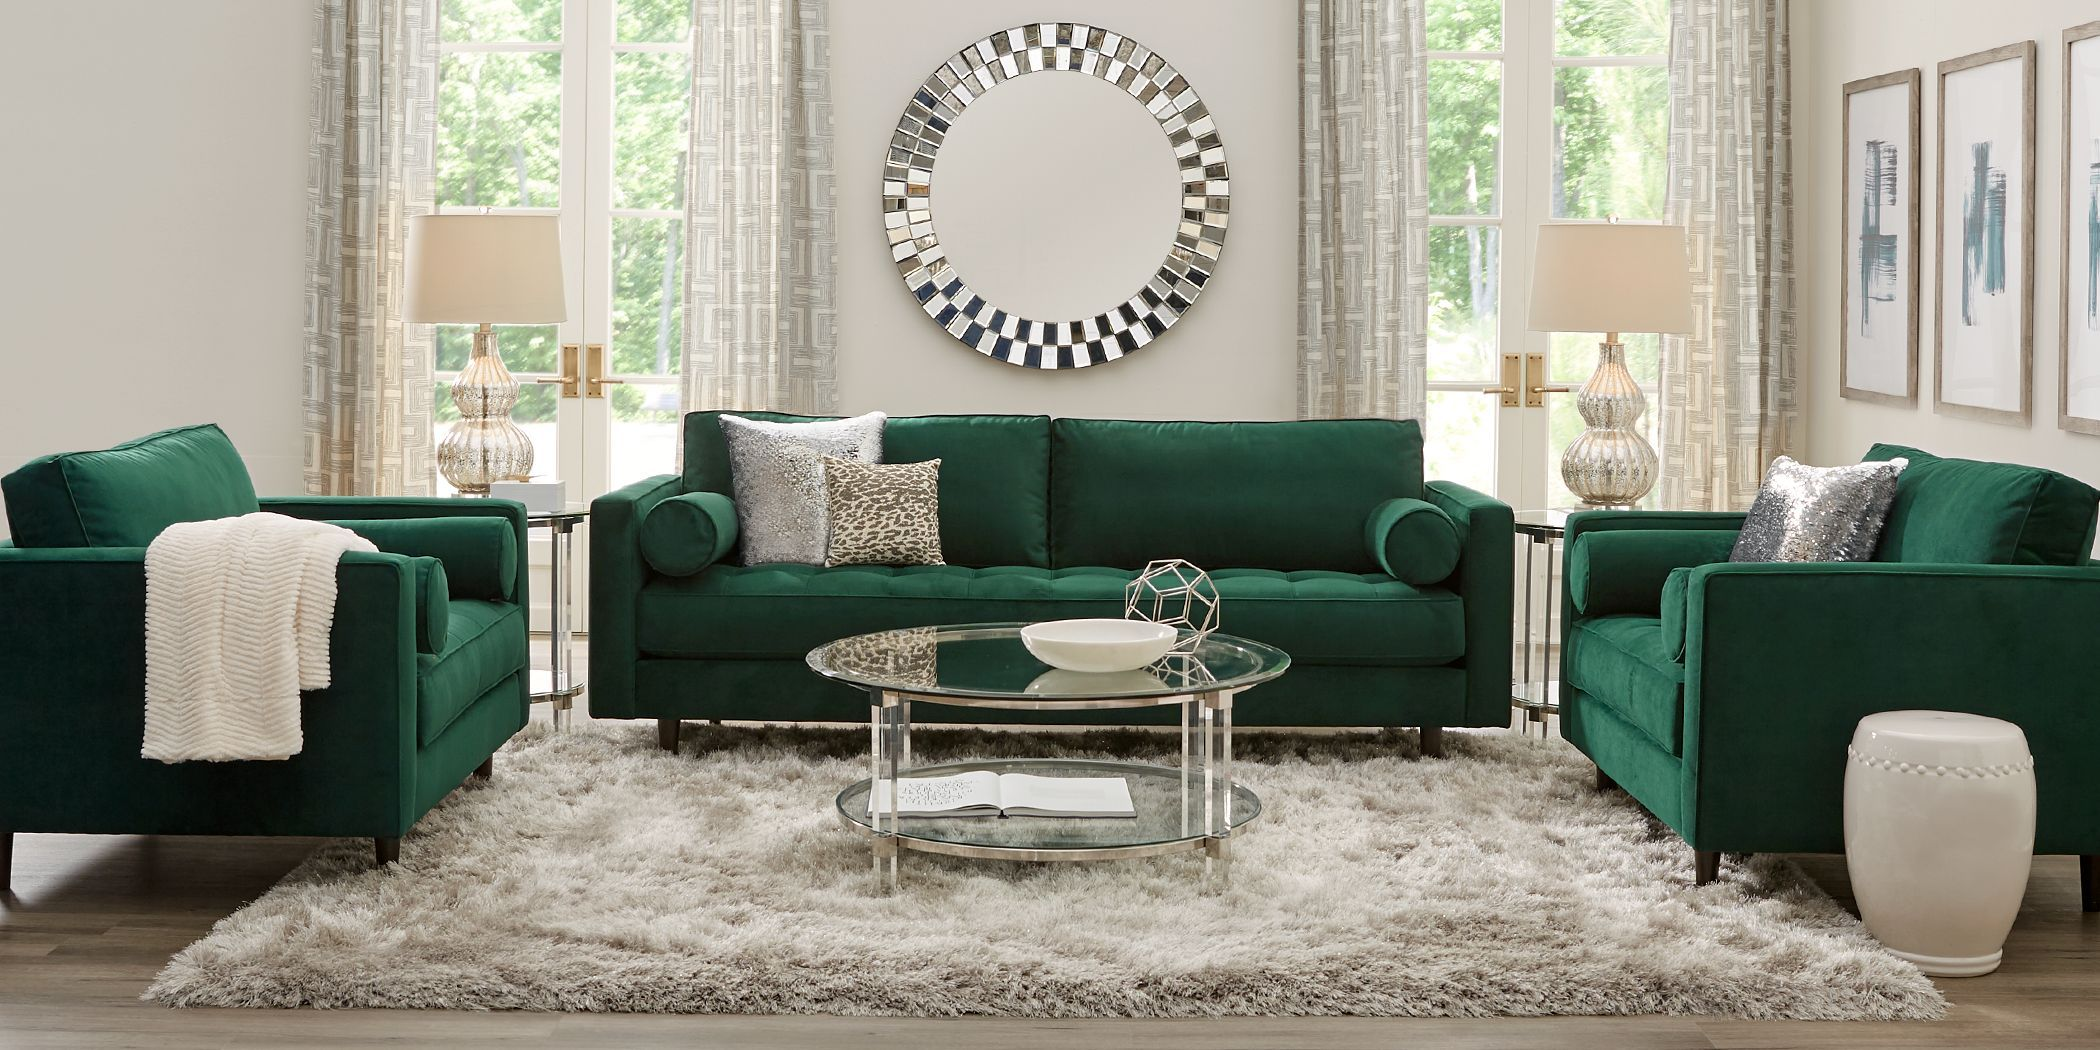 26 Living Room Sofa Ideas In 2021, Green Living Room Furniture